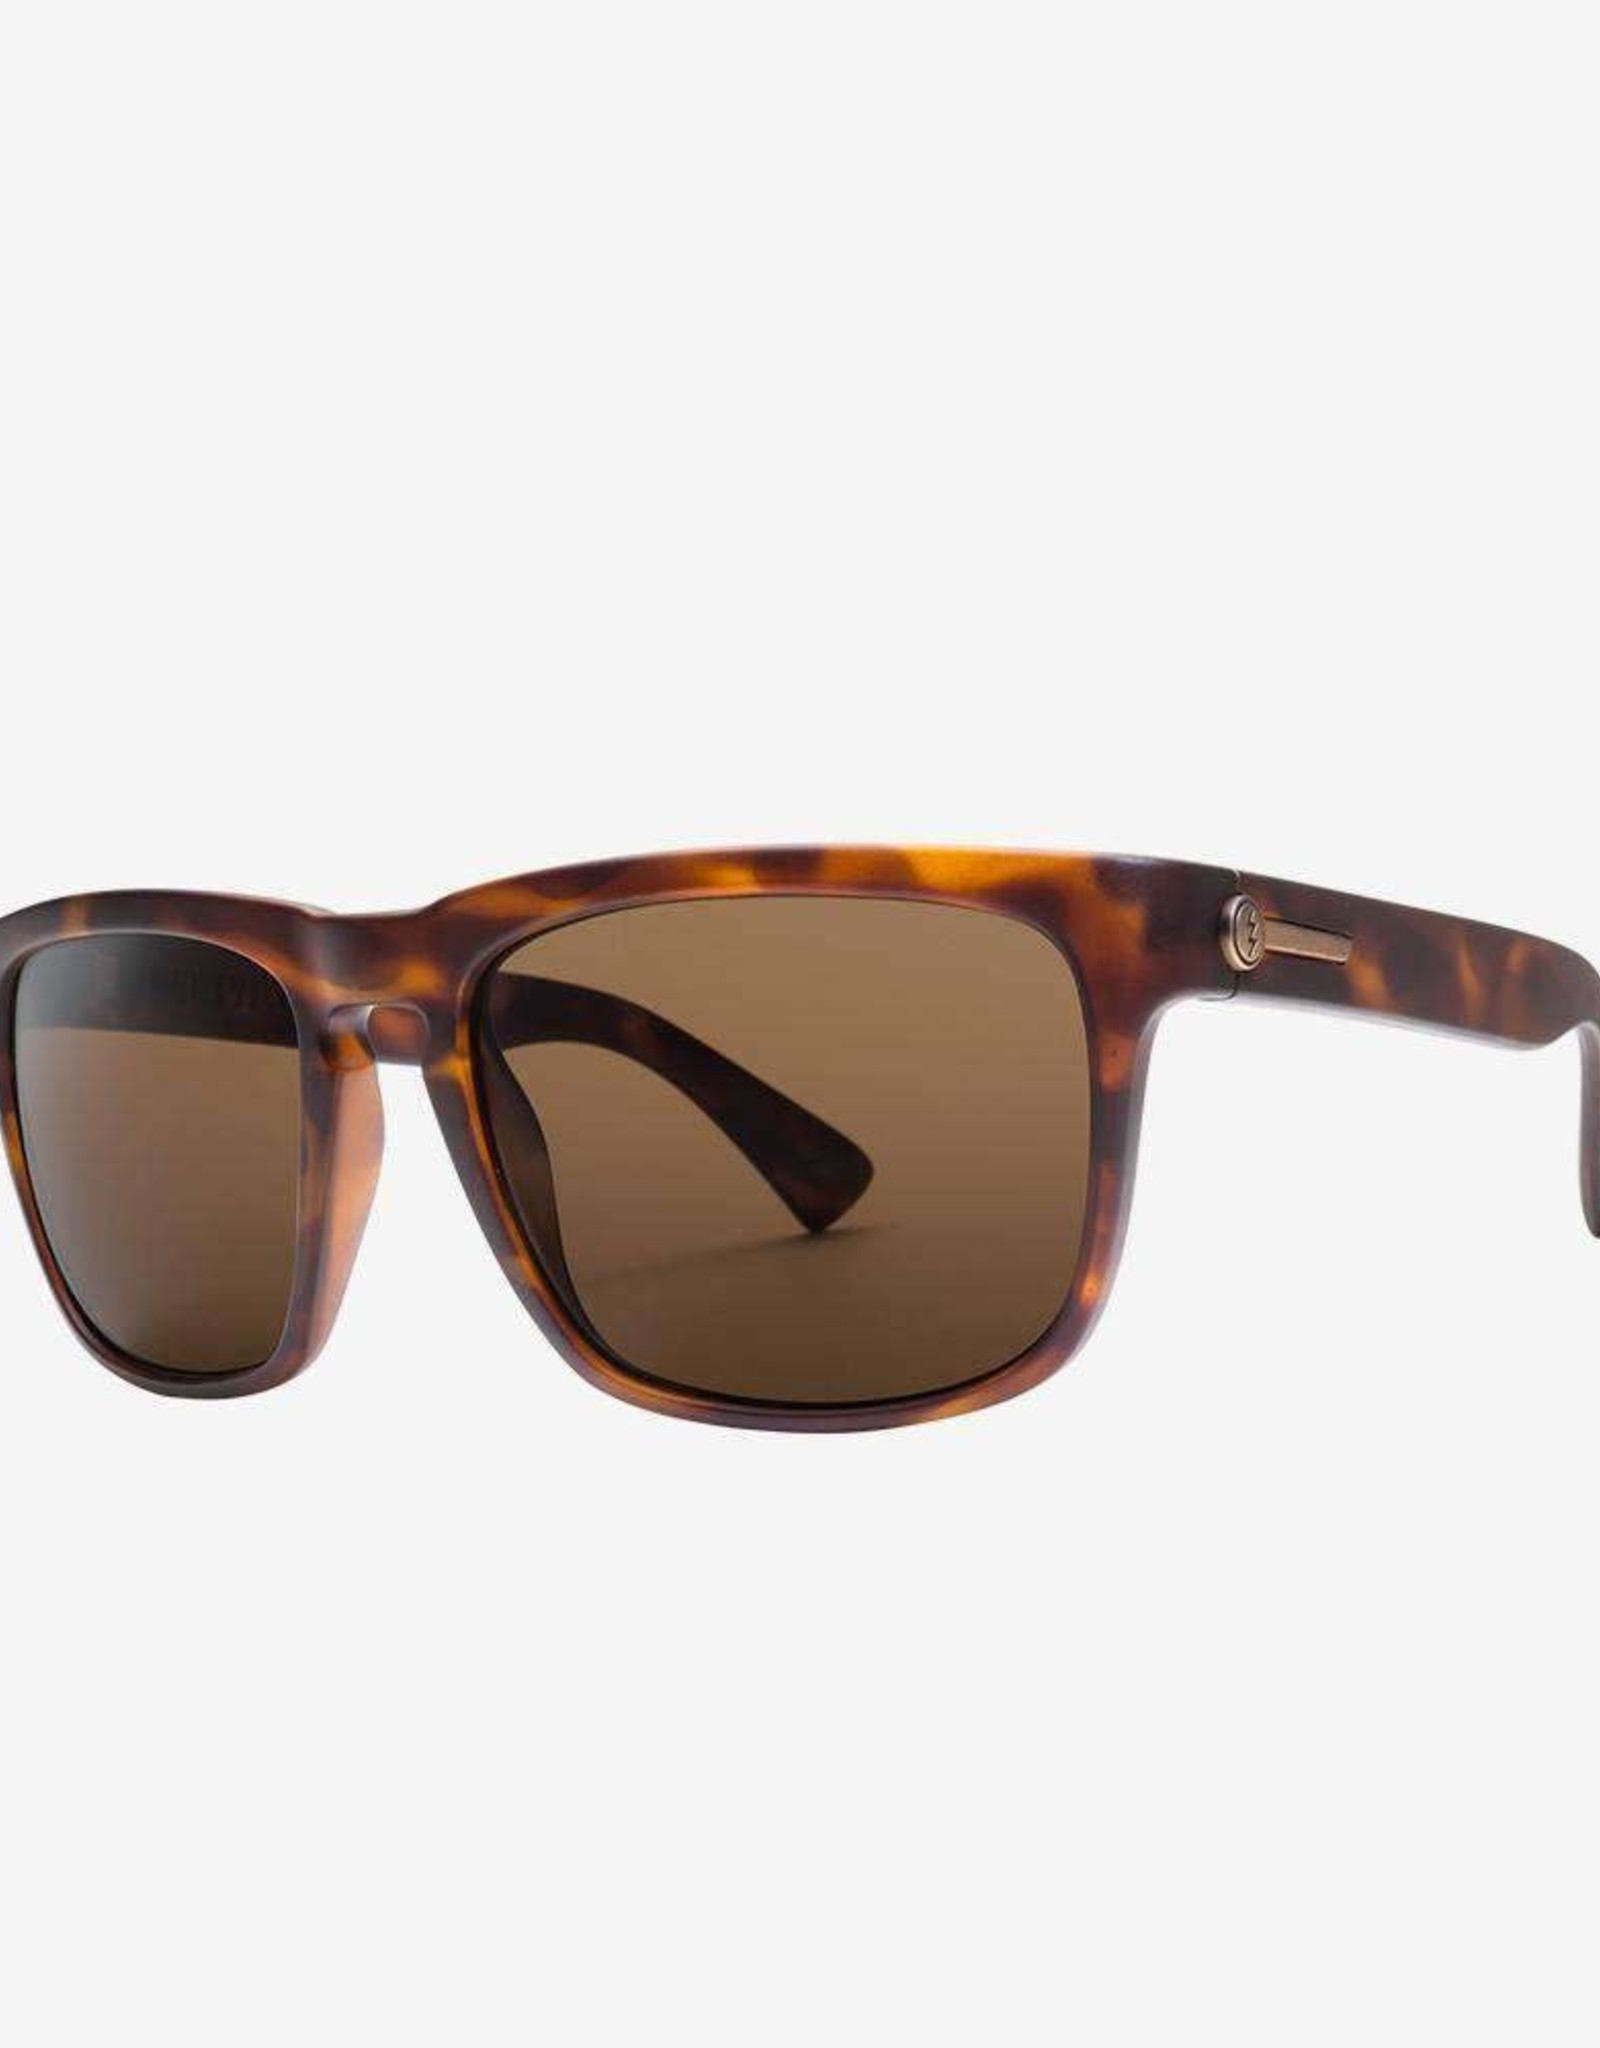 Electric Visual Electric - KNOXVILLE XL - Matte Tort w/ Bronze